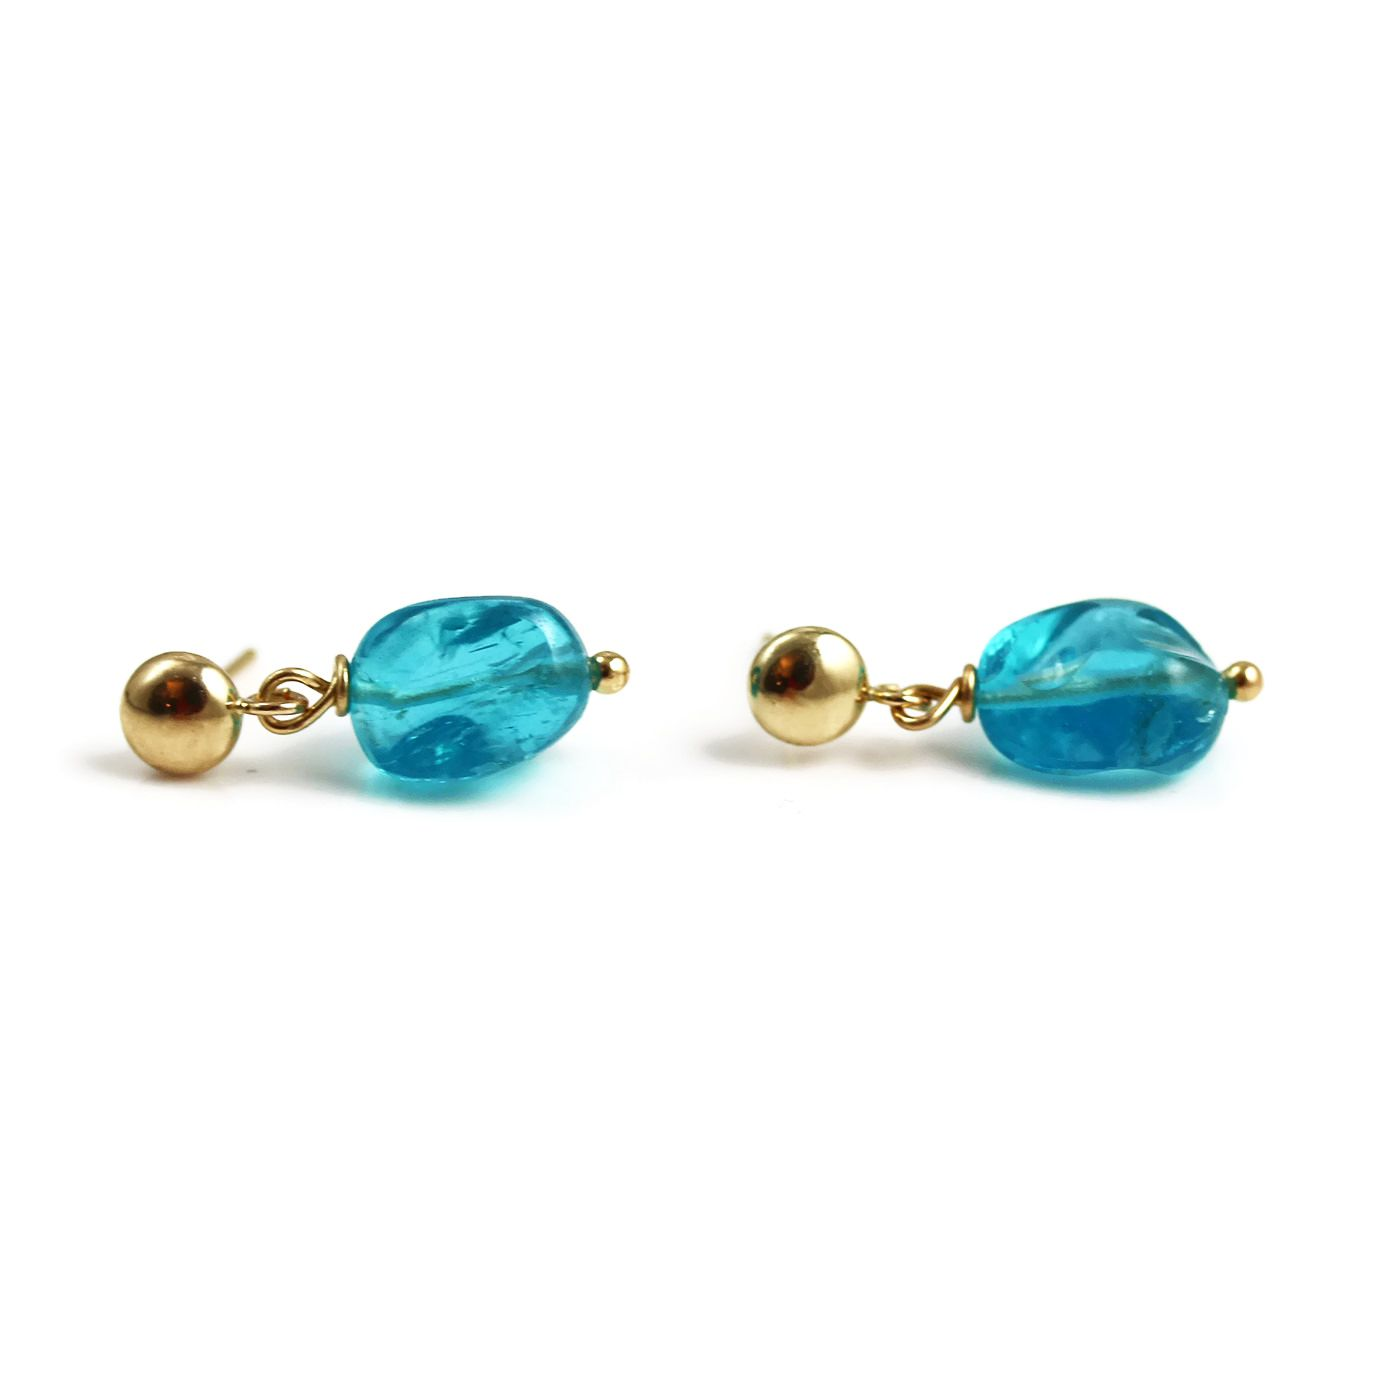 apatite pin london and trio up topaz a set blue neon blues earrings